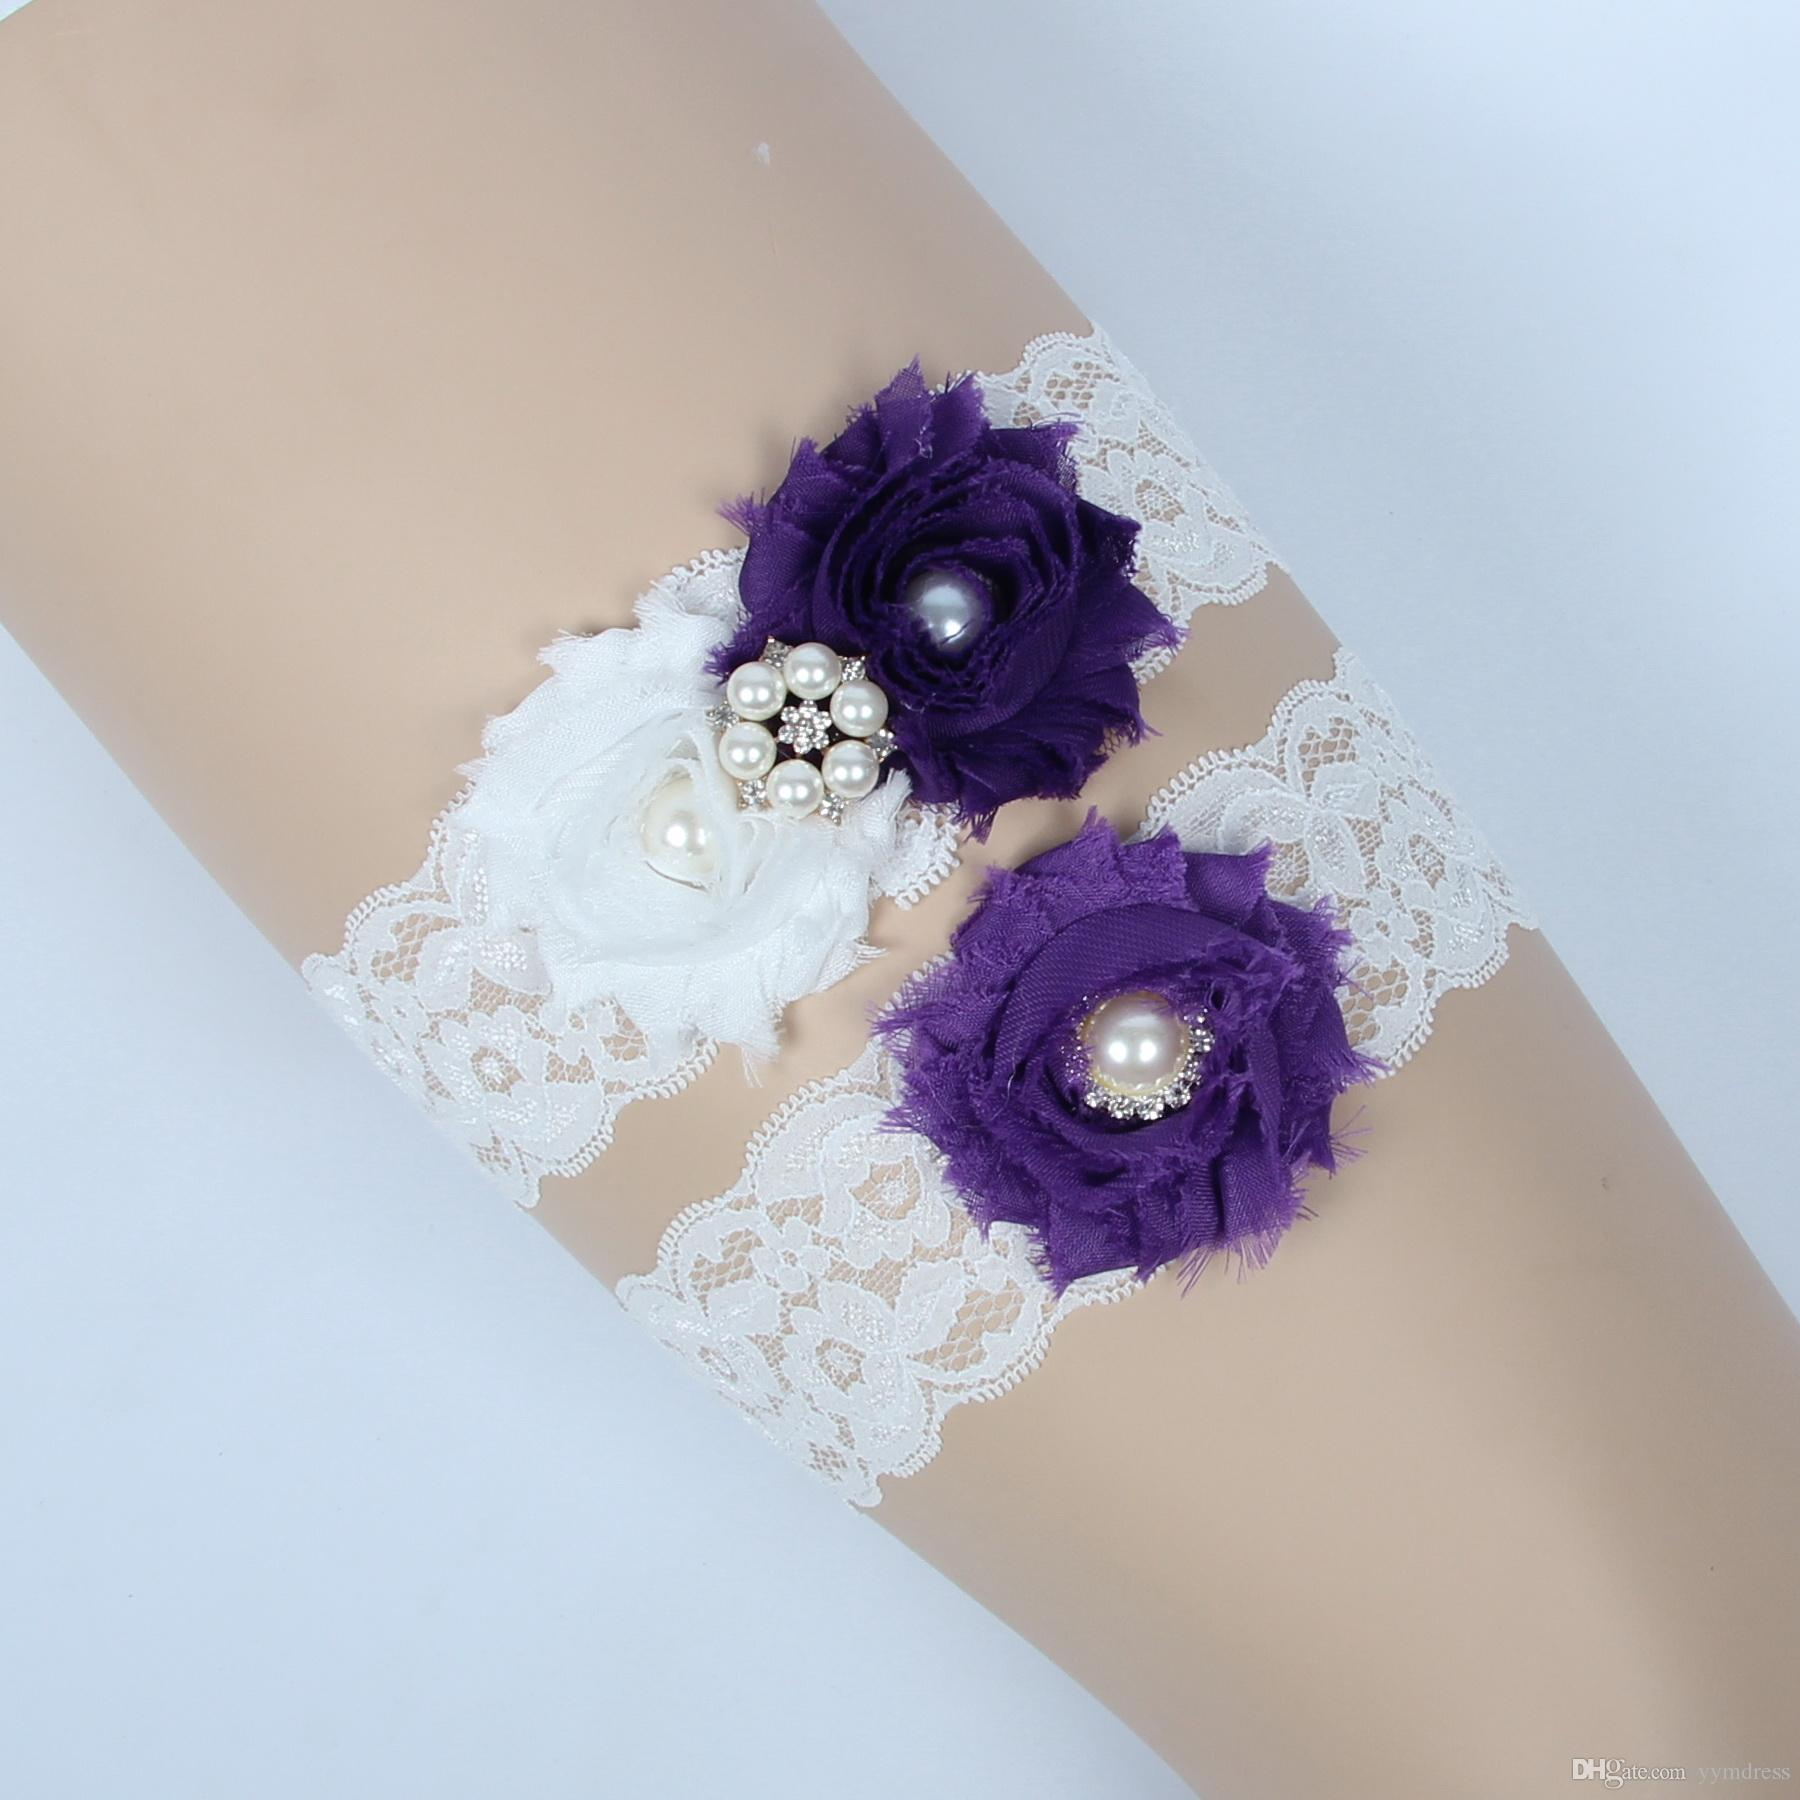 Vintage Bridal Garters Prom Garter Bridal Wedding Garter set Purple Lace Rhinestones Pearls Crystals In Stock Cheap Plus Size